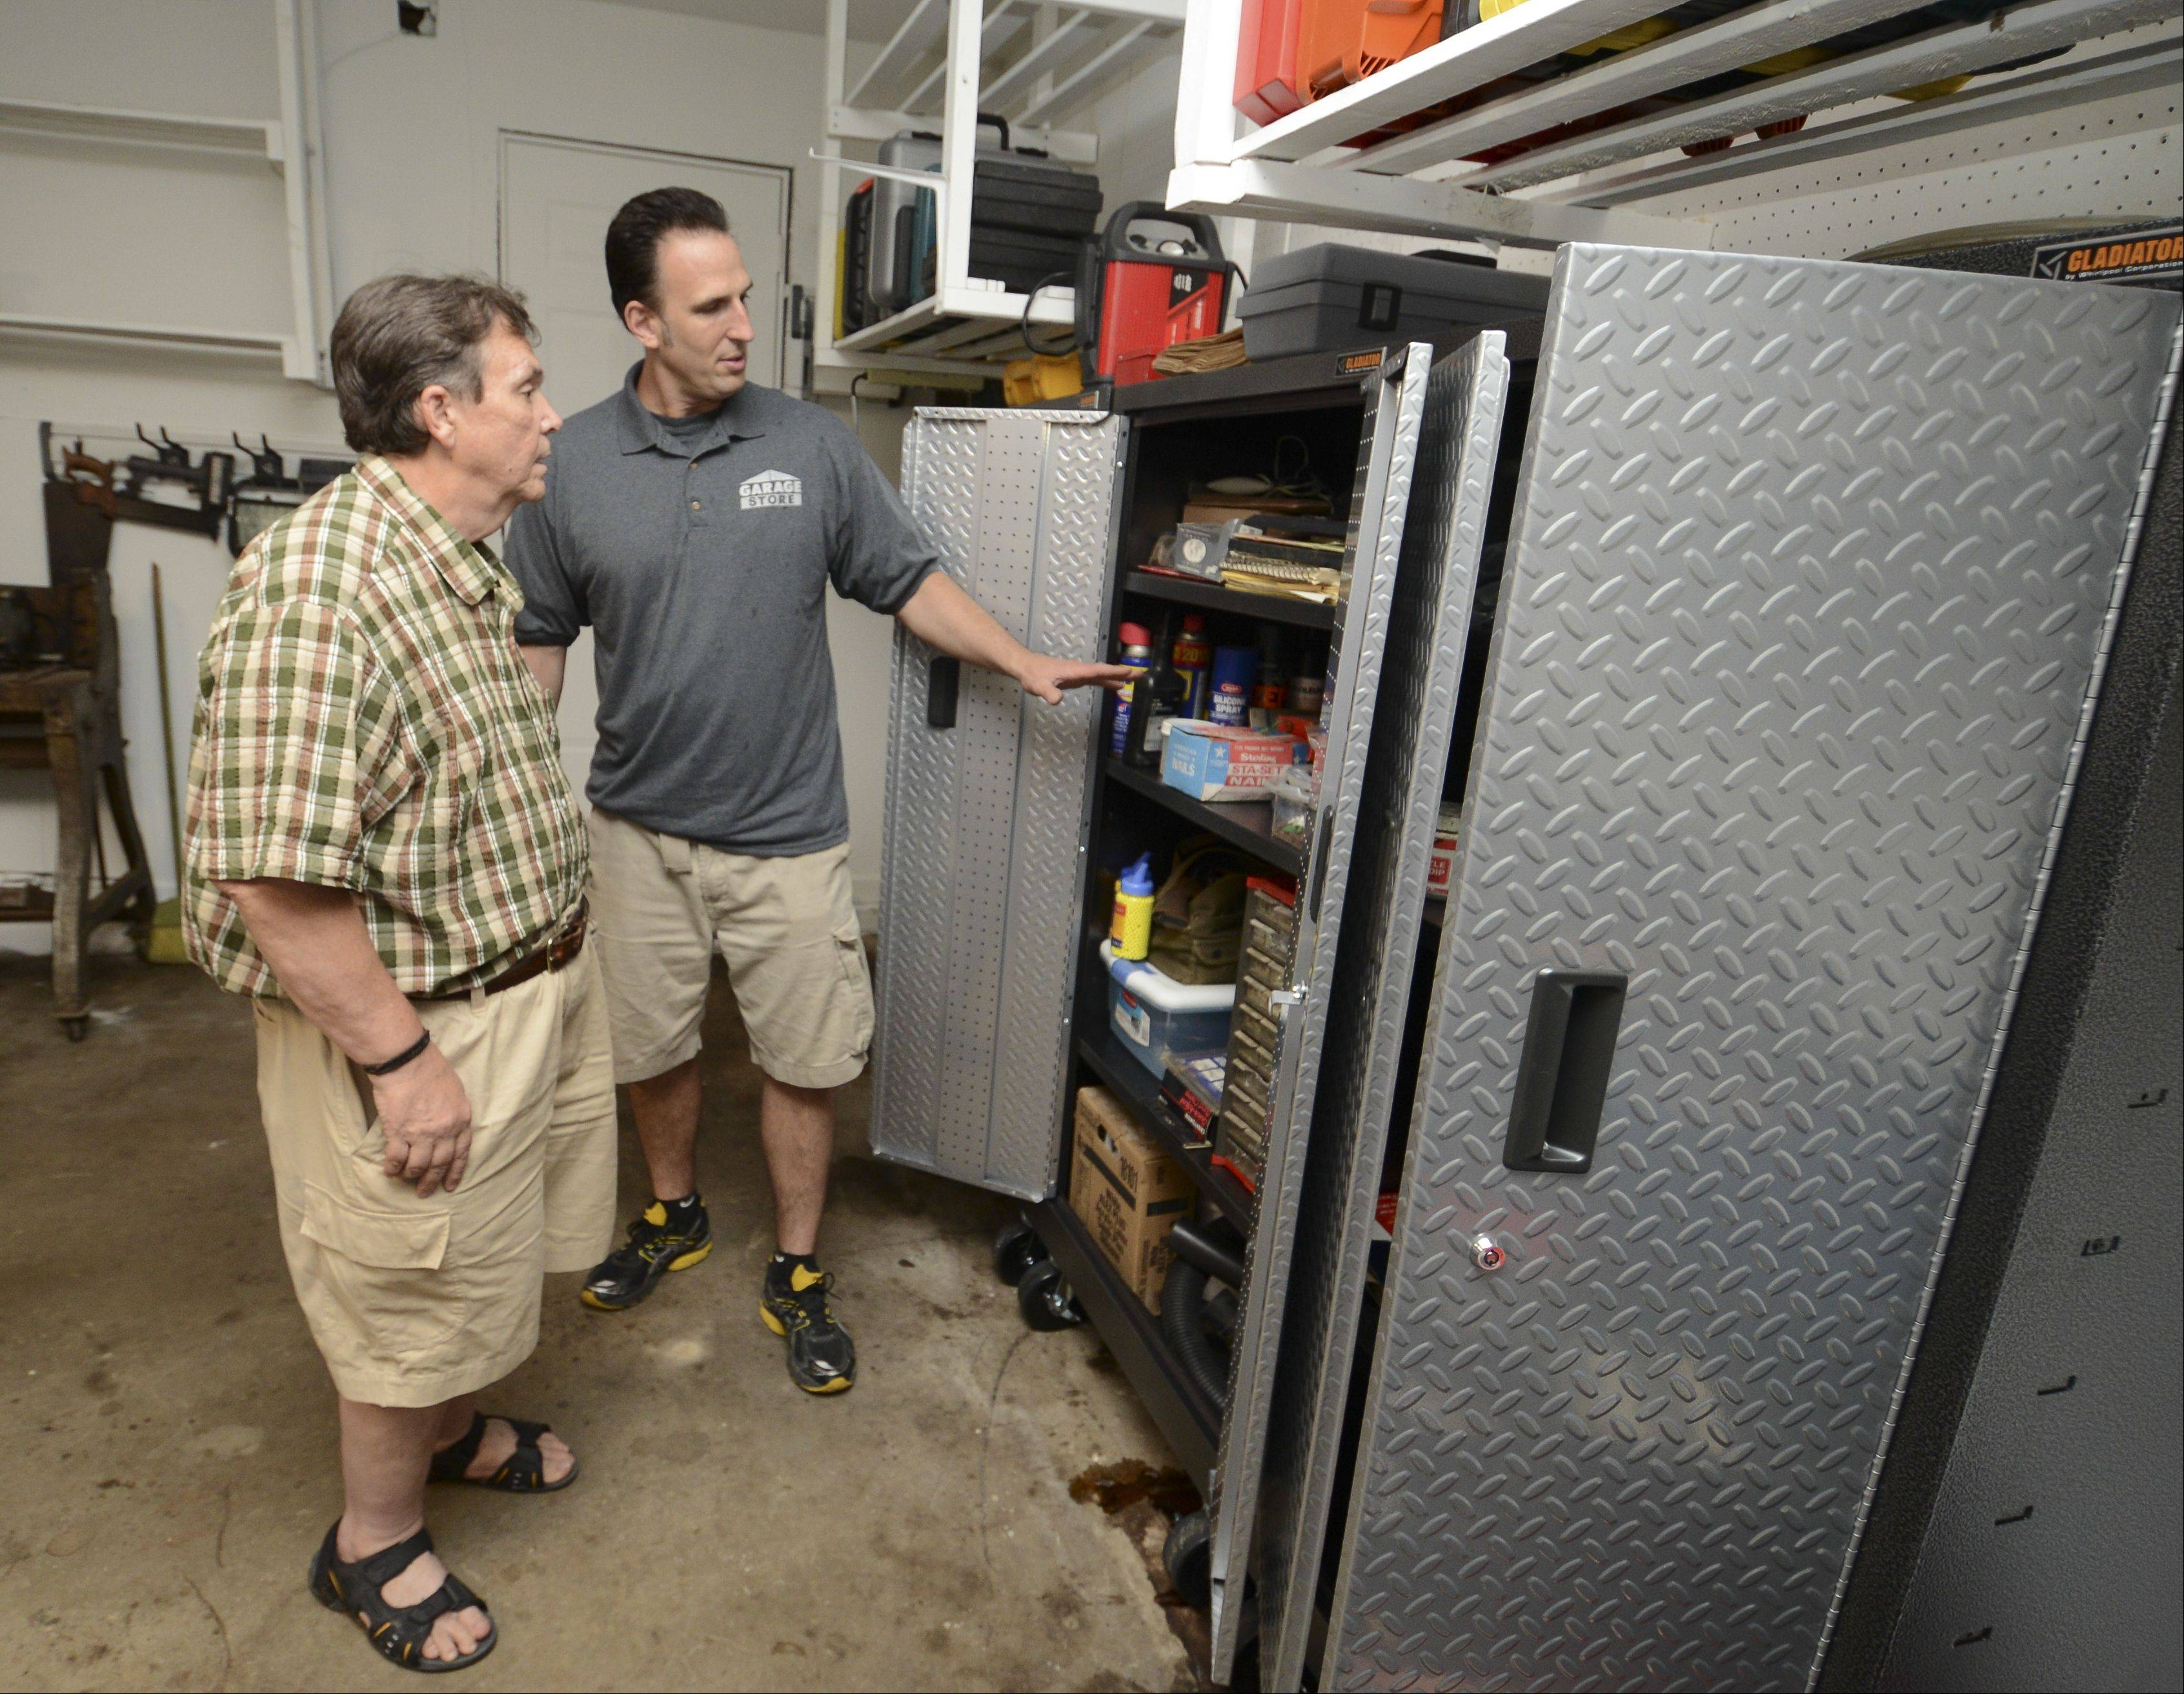 Jim Melchert of the Garage Store, right, shows the organization of new cabinets installed for Bob DeBellis of Roselle, winner of last year's Daily Herald Garage Makeover Giveaway.